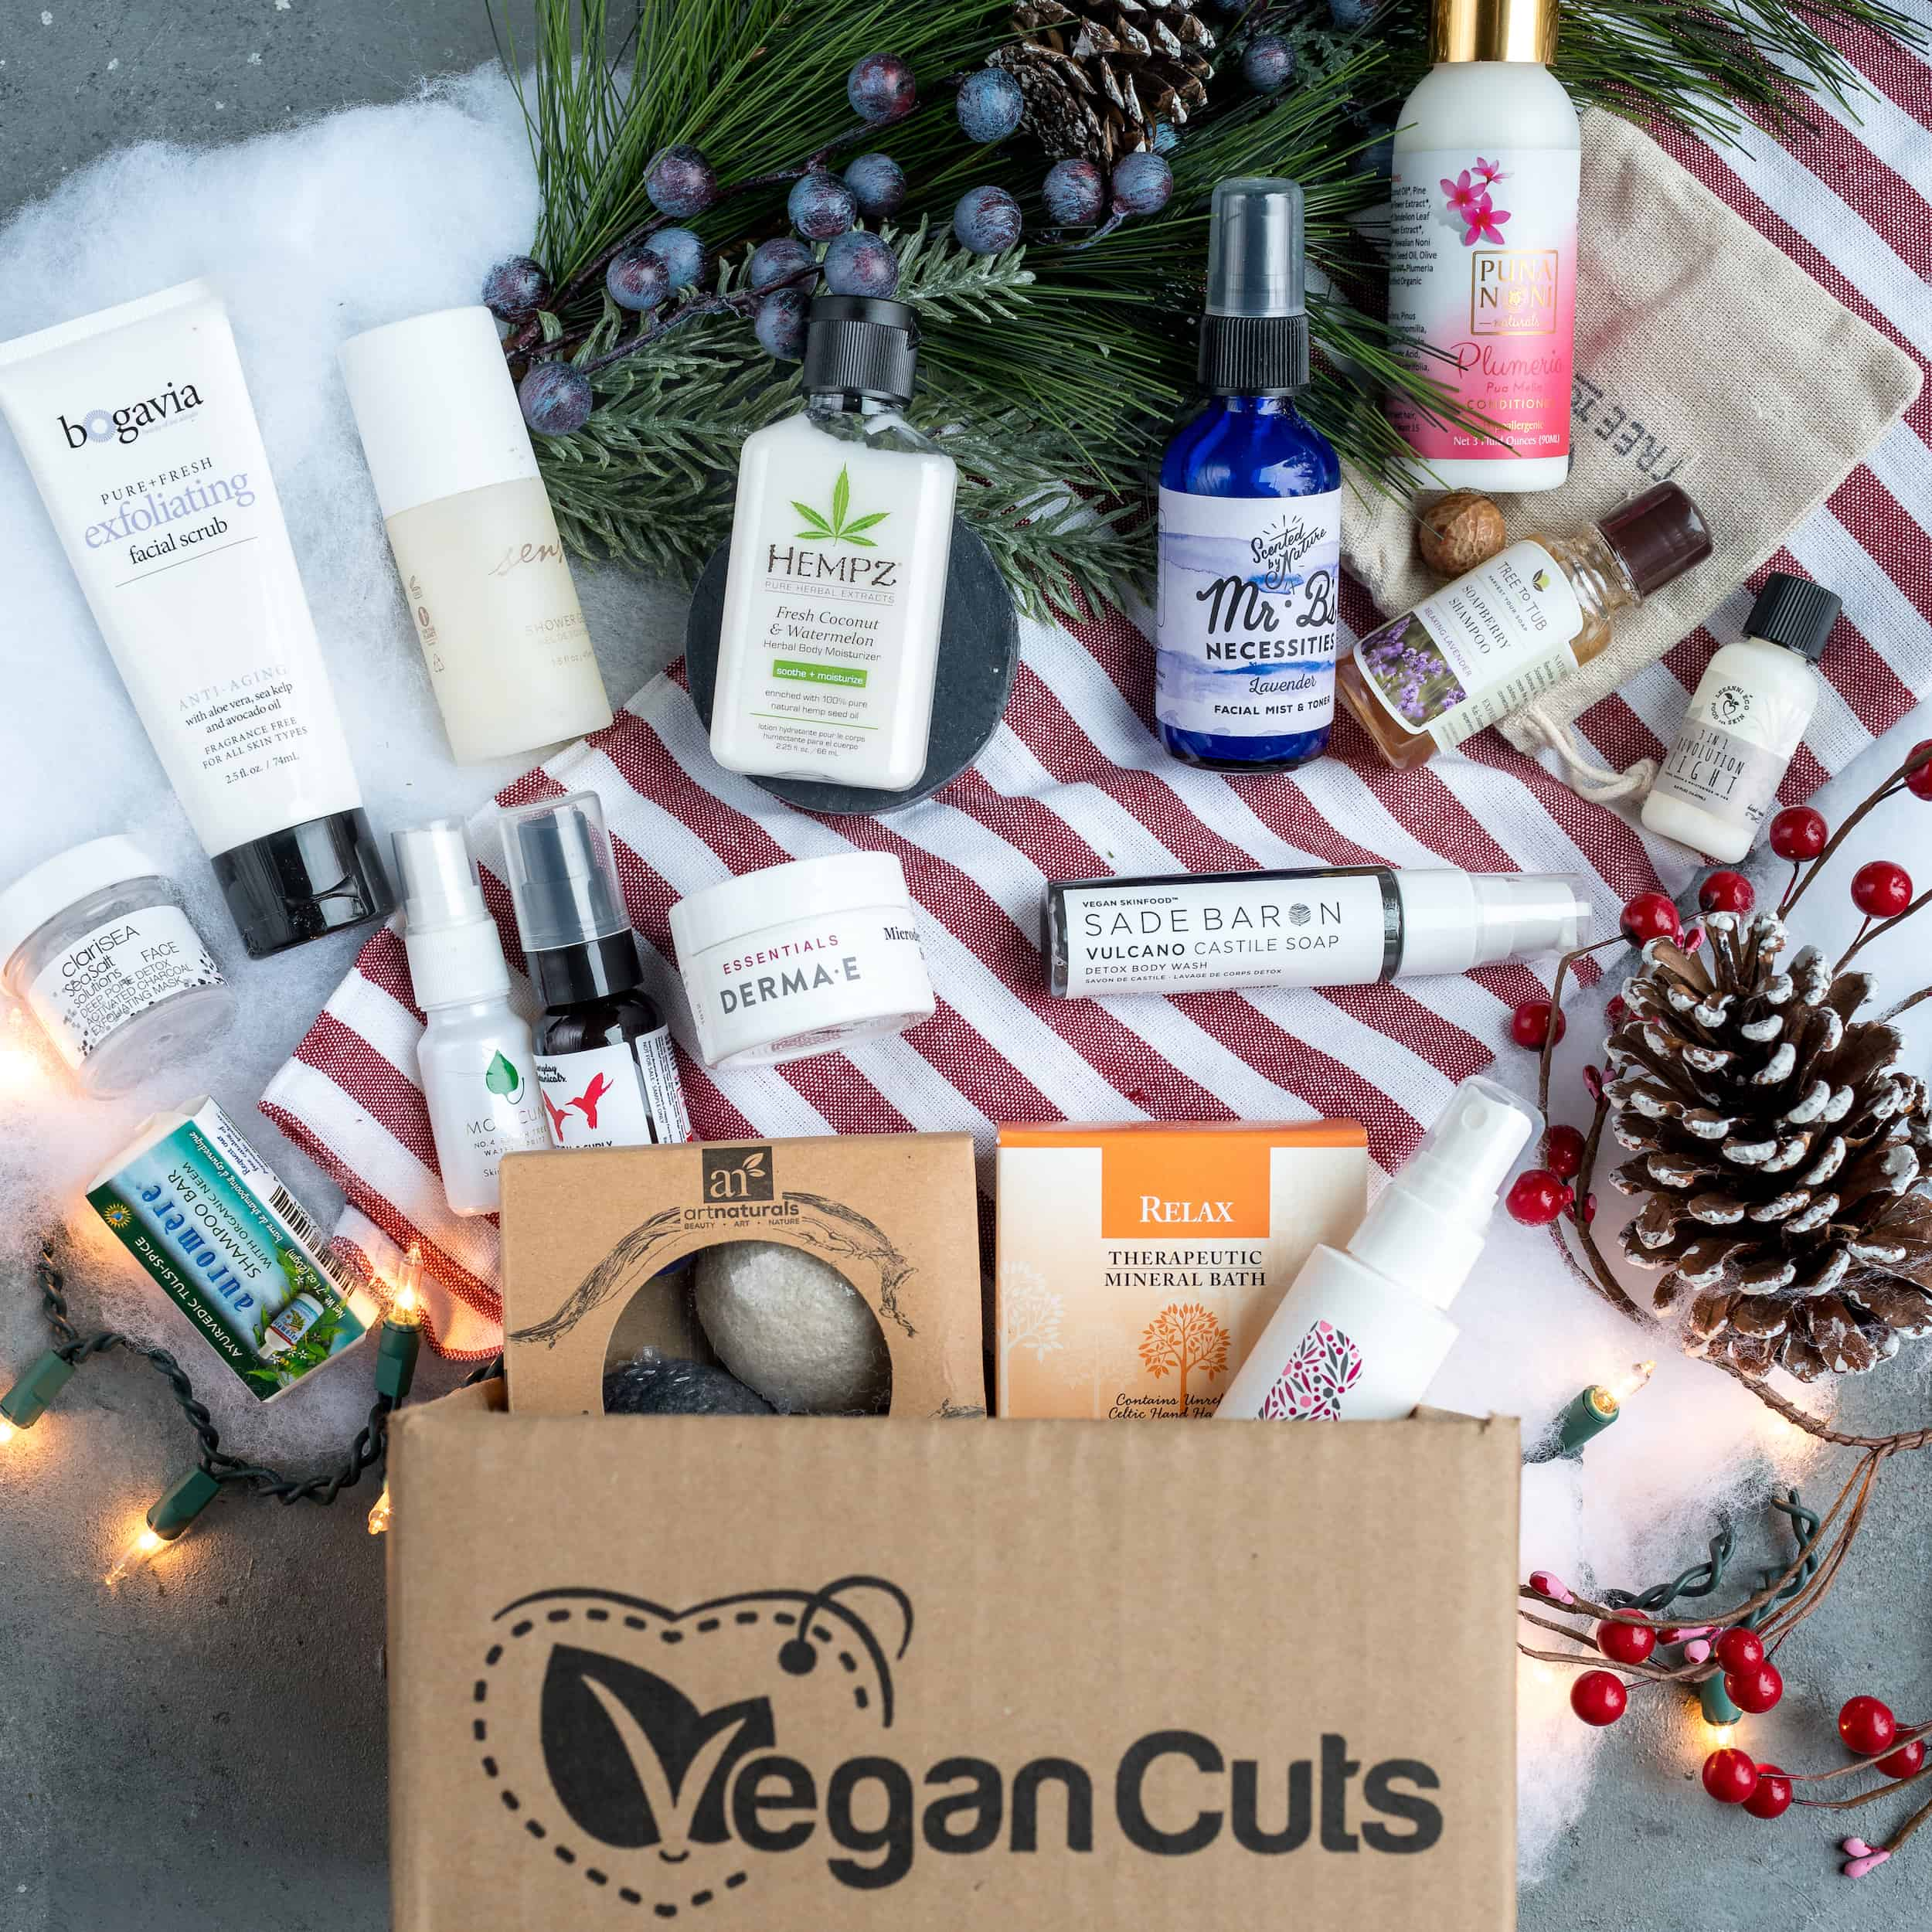 Vegan Cuts Pre Cyber Monday 7 Days of Holiday Sales: Day 1 – Rejuvenate Beauty Haul for $32!